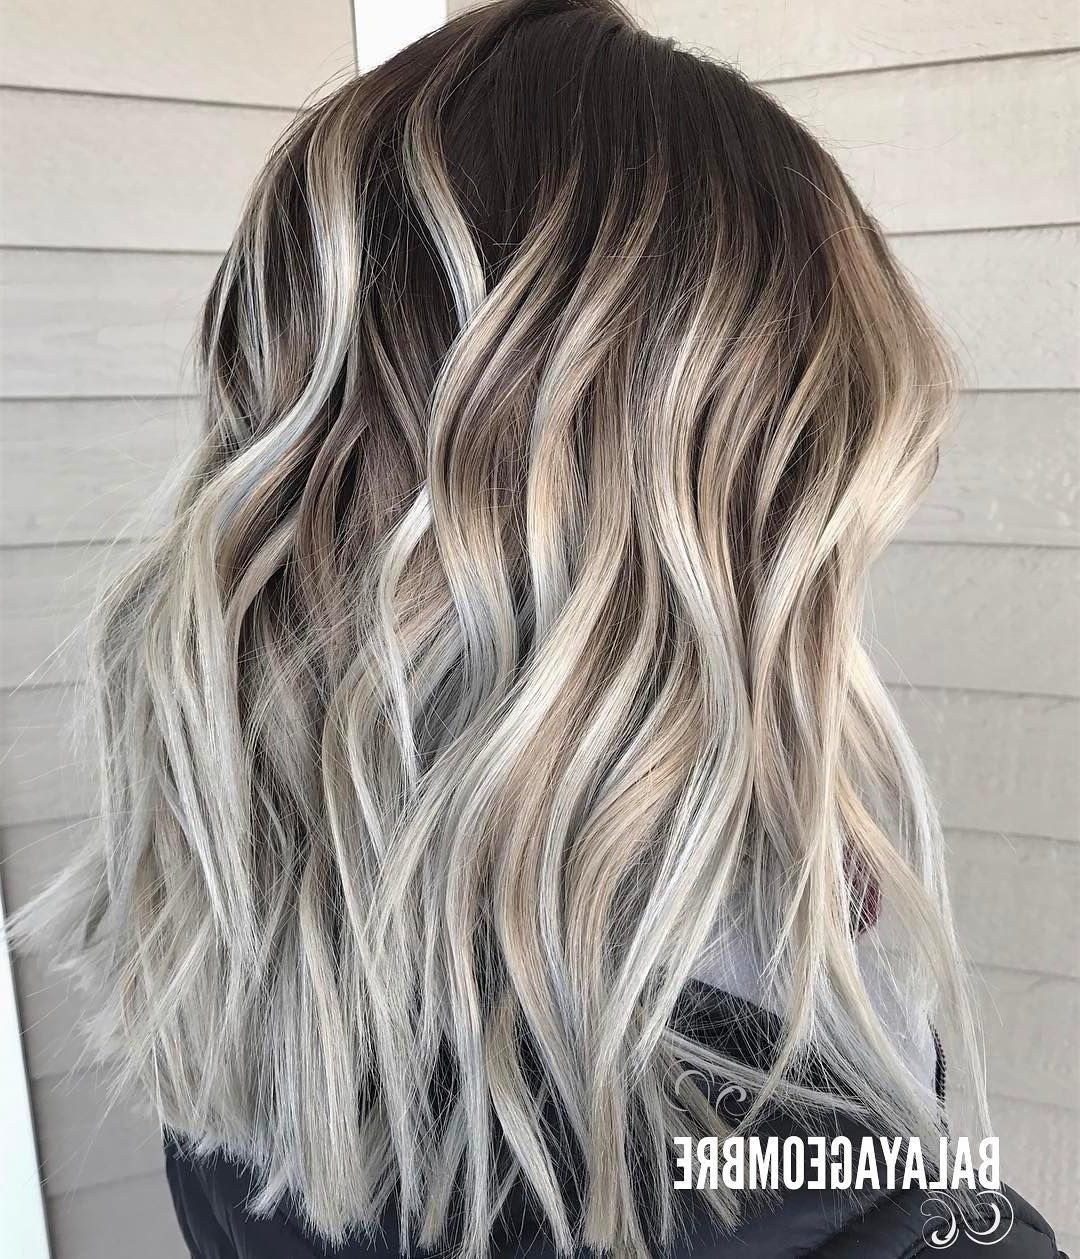 Widely Used Ash Blonde Medium Hairstyles Intended For 10 Best Medium Layered Hairstyles 2019 – Brown & Ash Blonde Fashion (View 2 of 20)